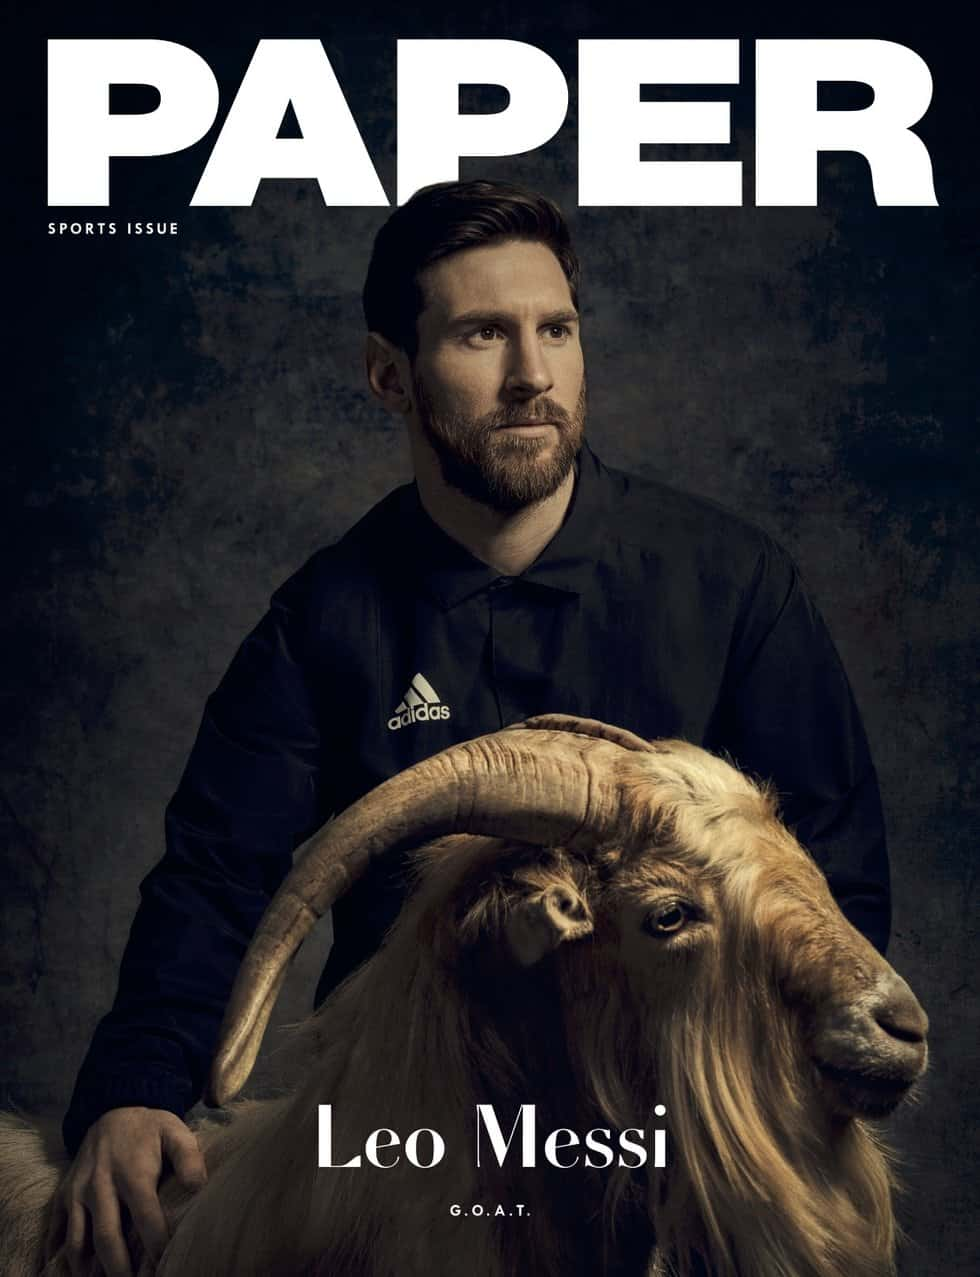 Photo of Lionel Messi poses with a goat as he covers PAPER Magazine's first sport issue